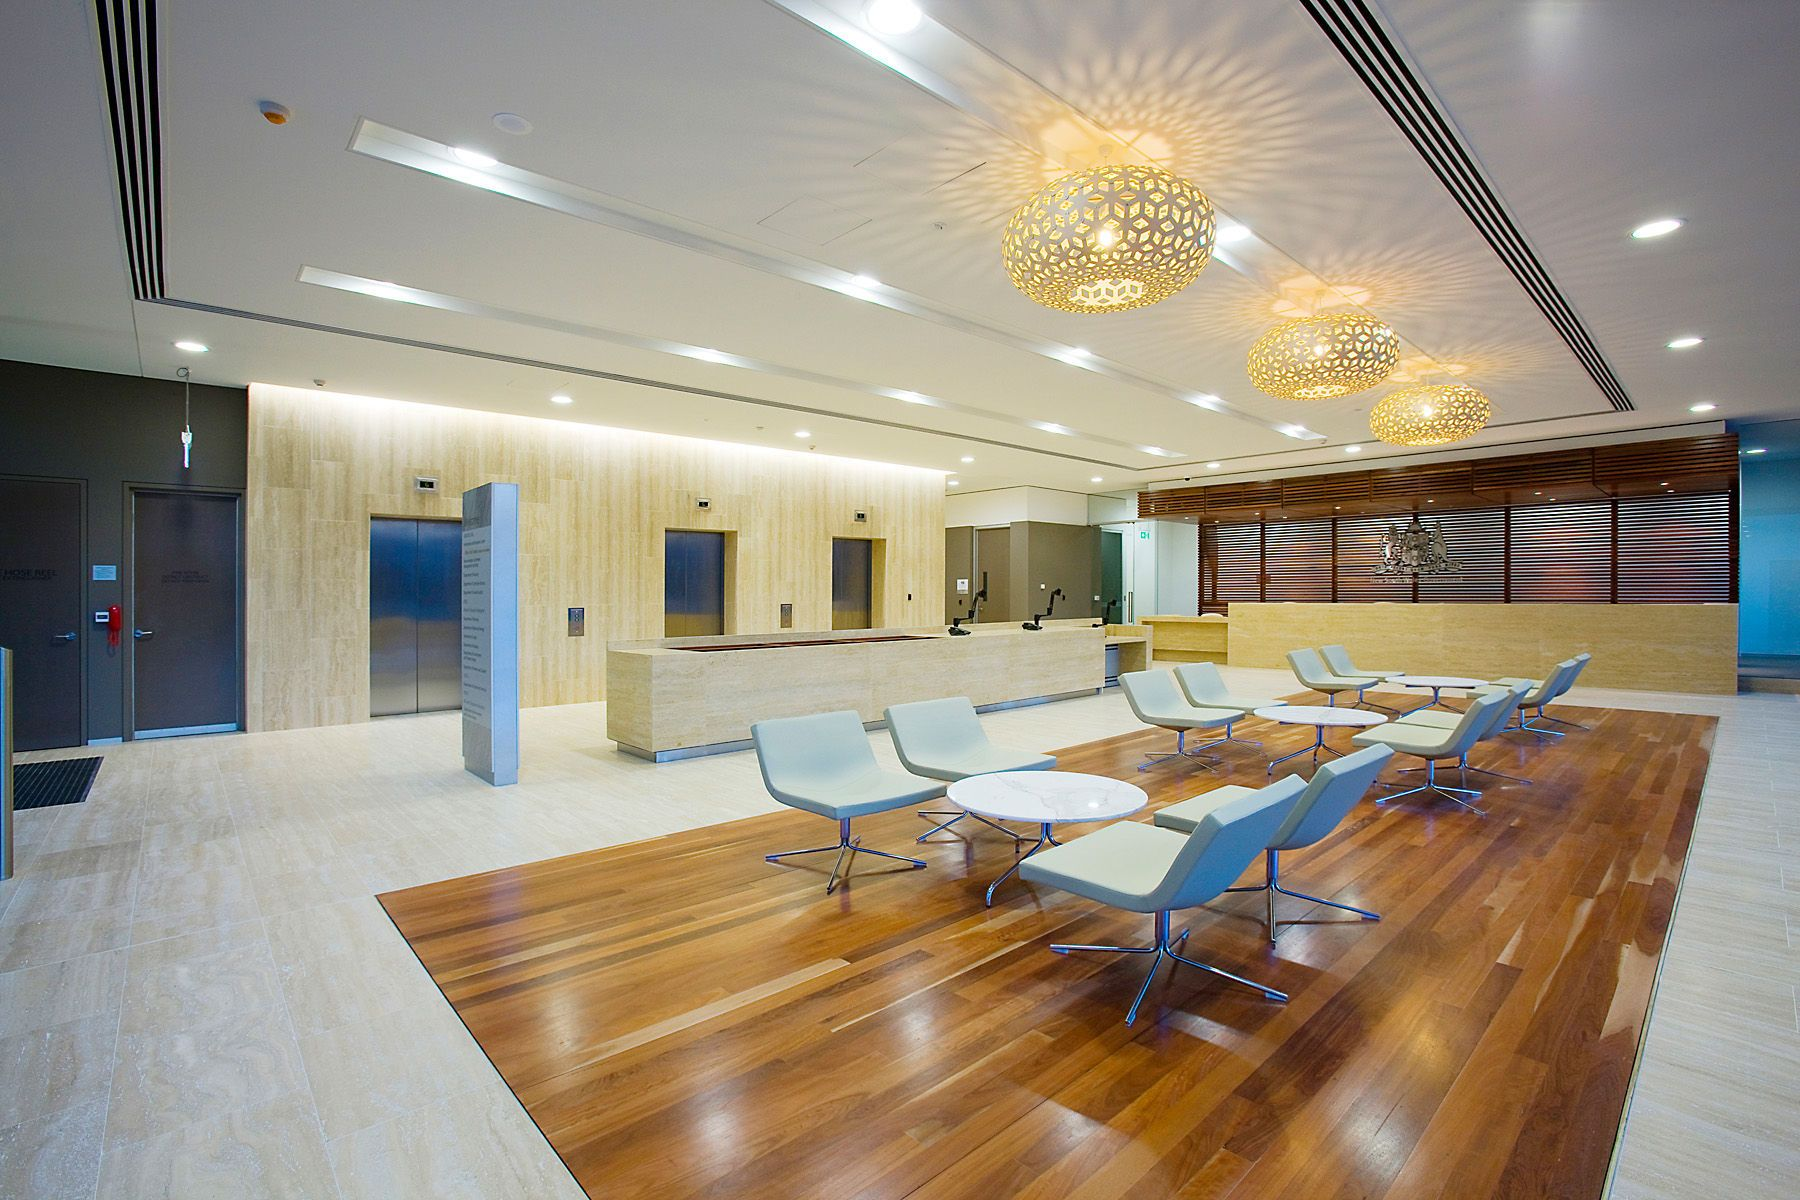 hsbc bank offices interior - Google Search